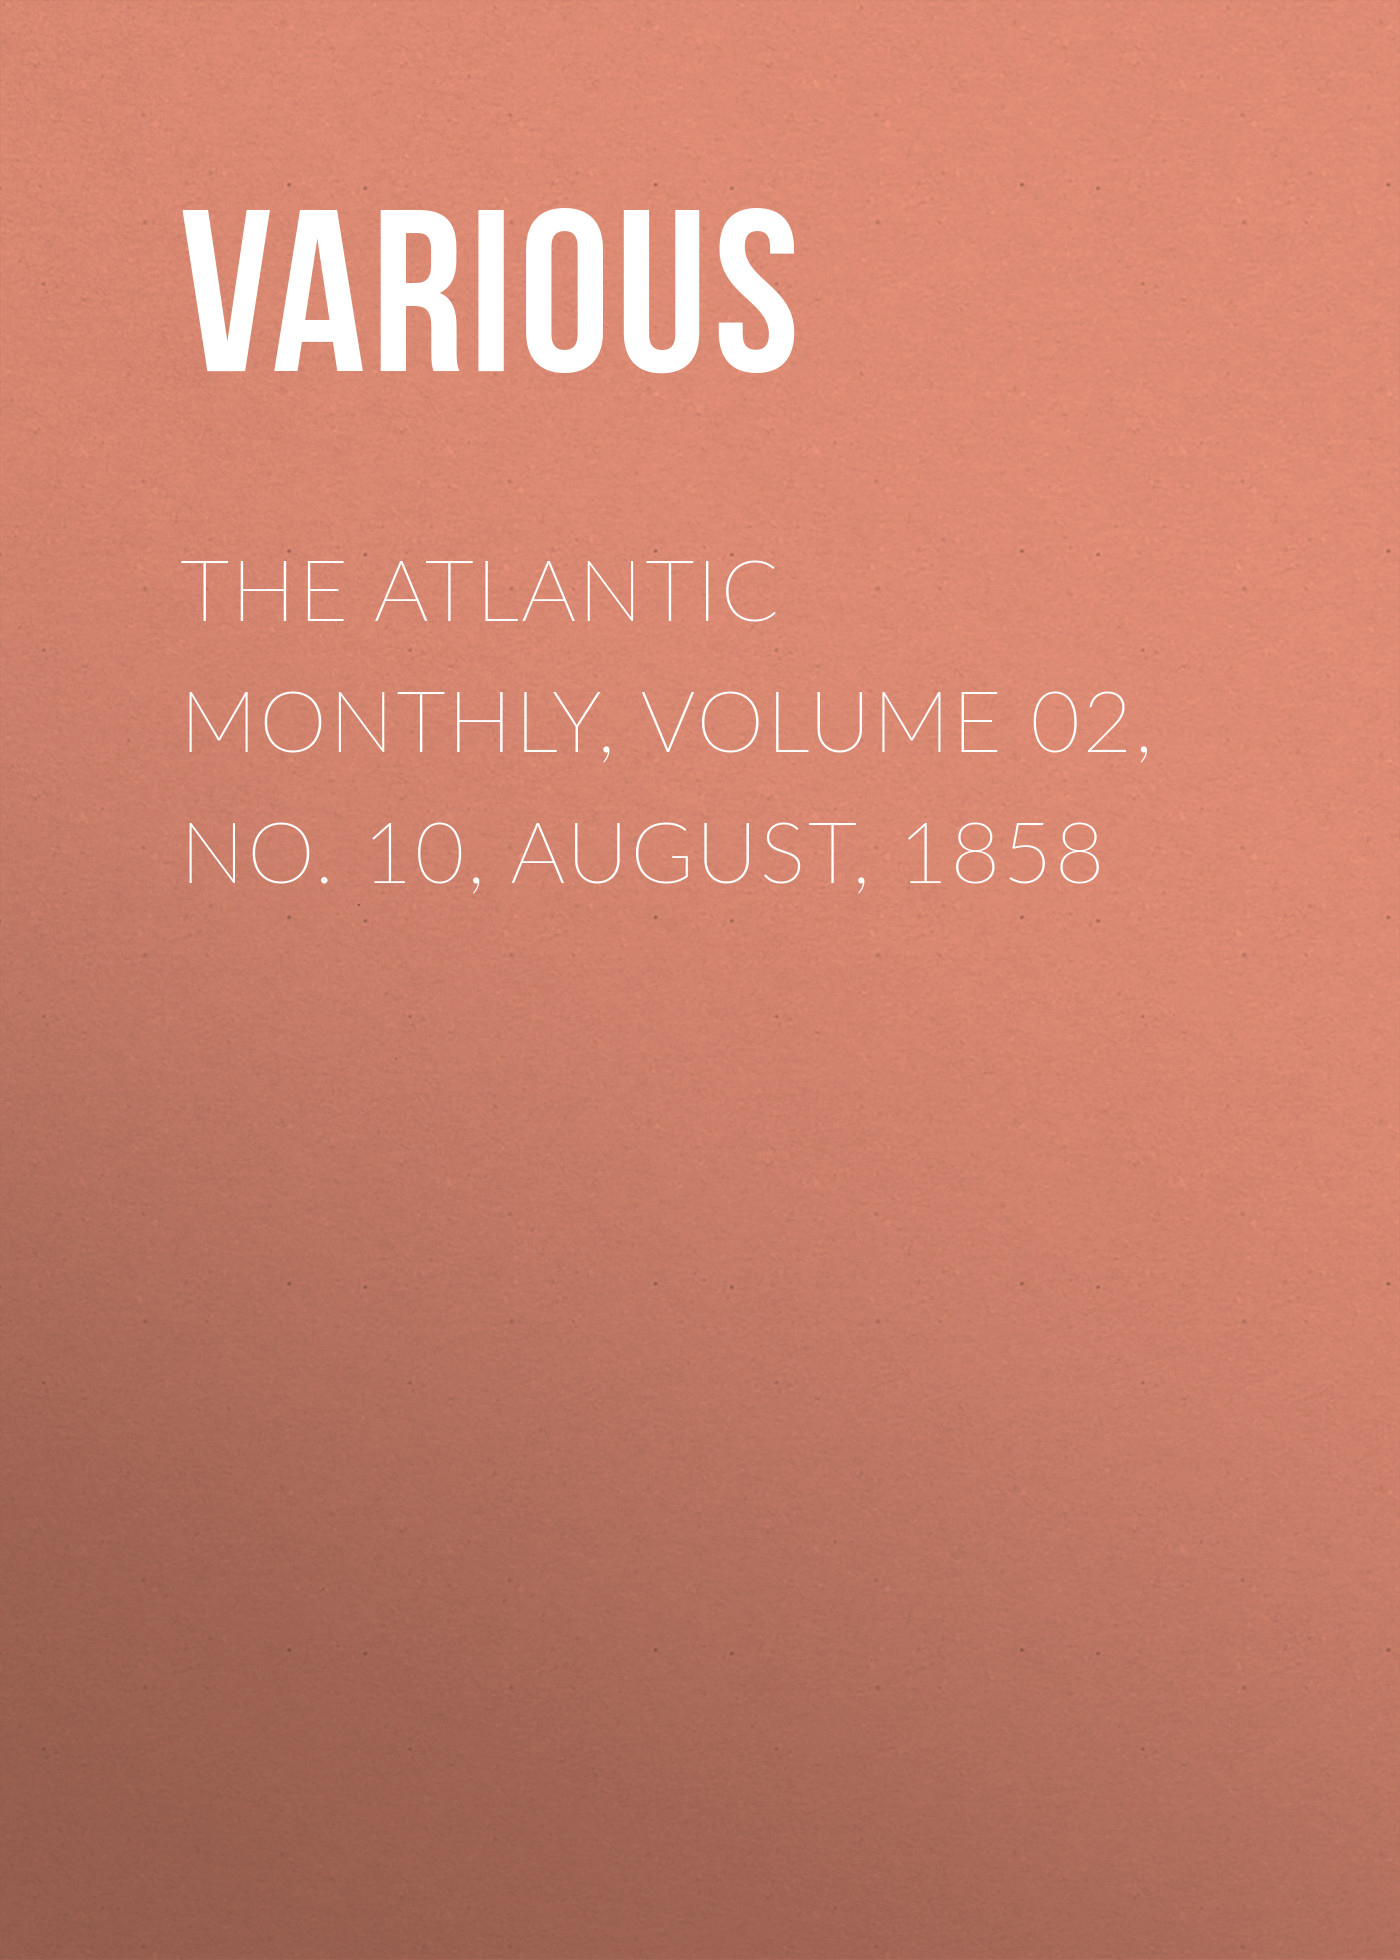 Various The Atlantic Monthly, Volume 02, No. 10, August, 1858 various the atlantic monthly volume 02 no 10 august 1858